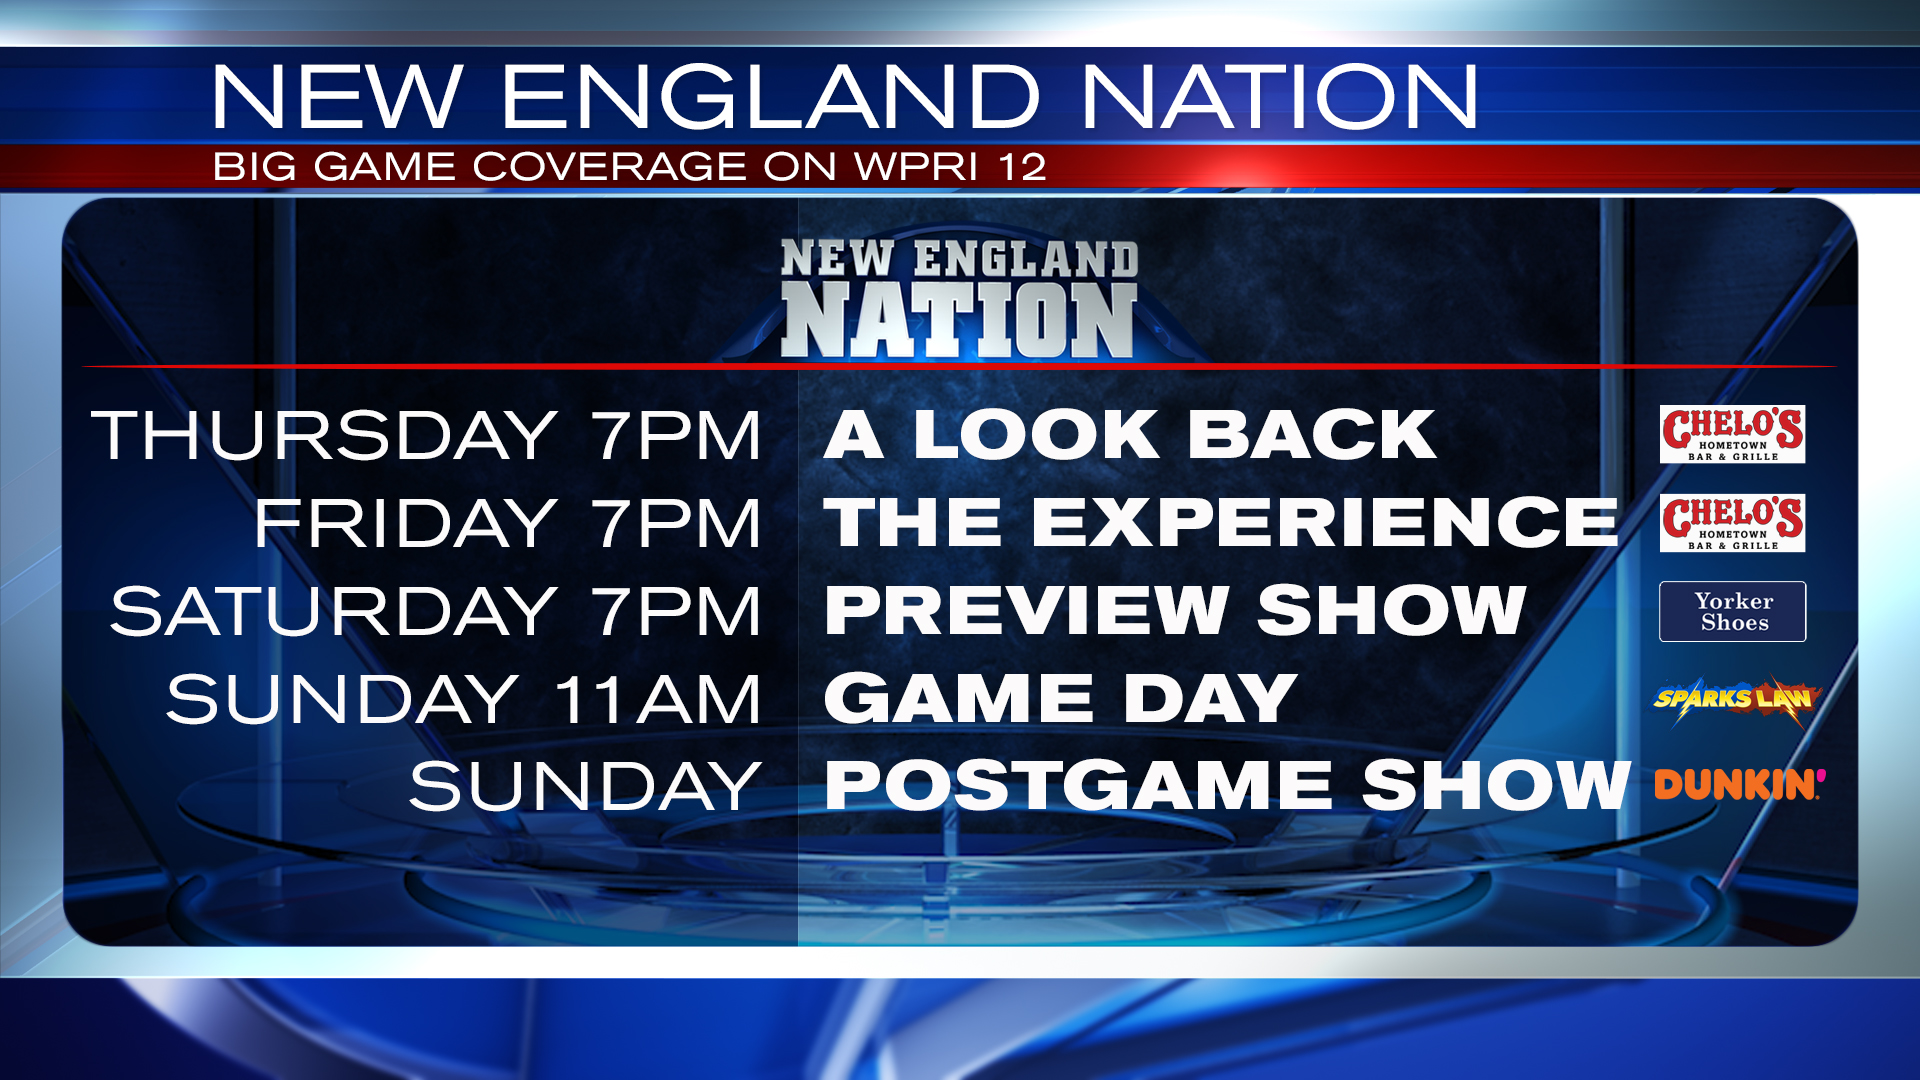 New England Nation Big Game Coverage & Shows